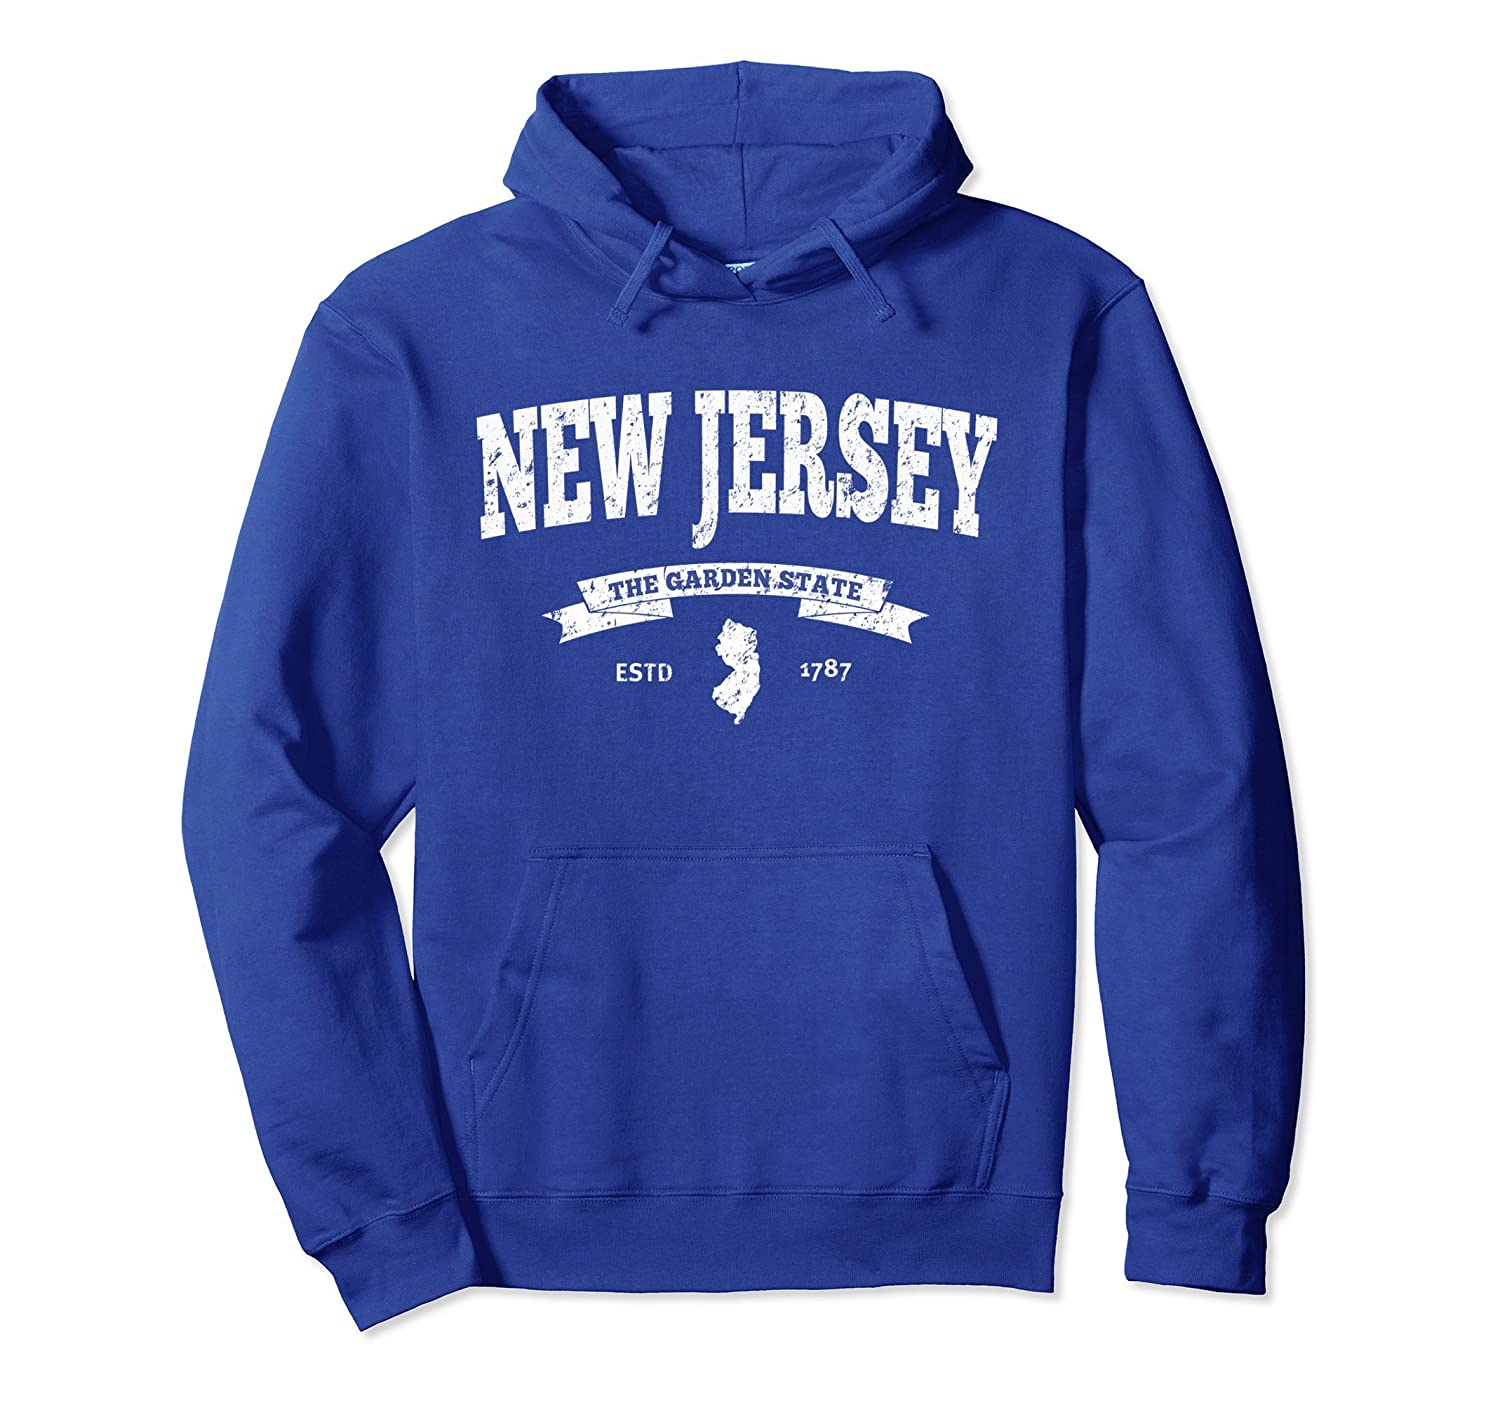 New Jersey Hoodie. Vintage New Jersey Sweatshirt Retro NJ-fa